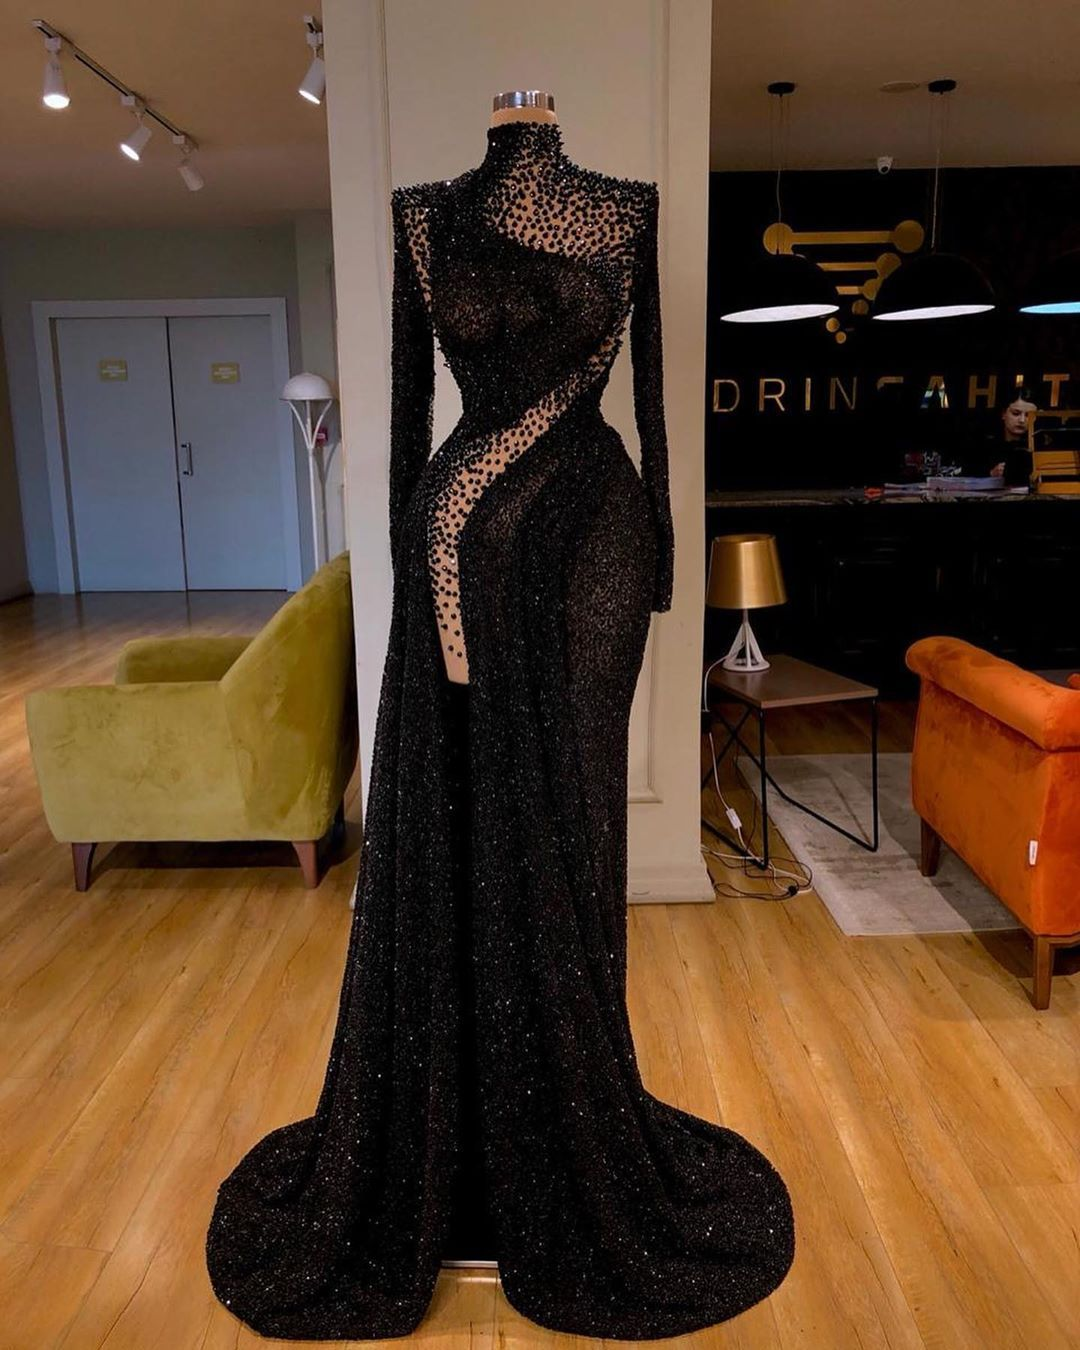 Stunning Valdrin Sahiti Custom Couture Gown Find The Perfect Gown With Pageant Planet Browse All Of Our Beautiful Pro Glam Dresses Gala Dresses Gowns Dresses